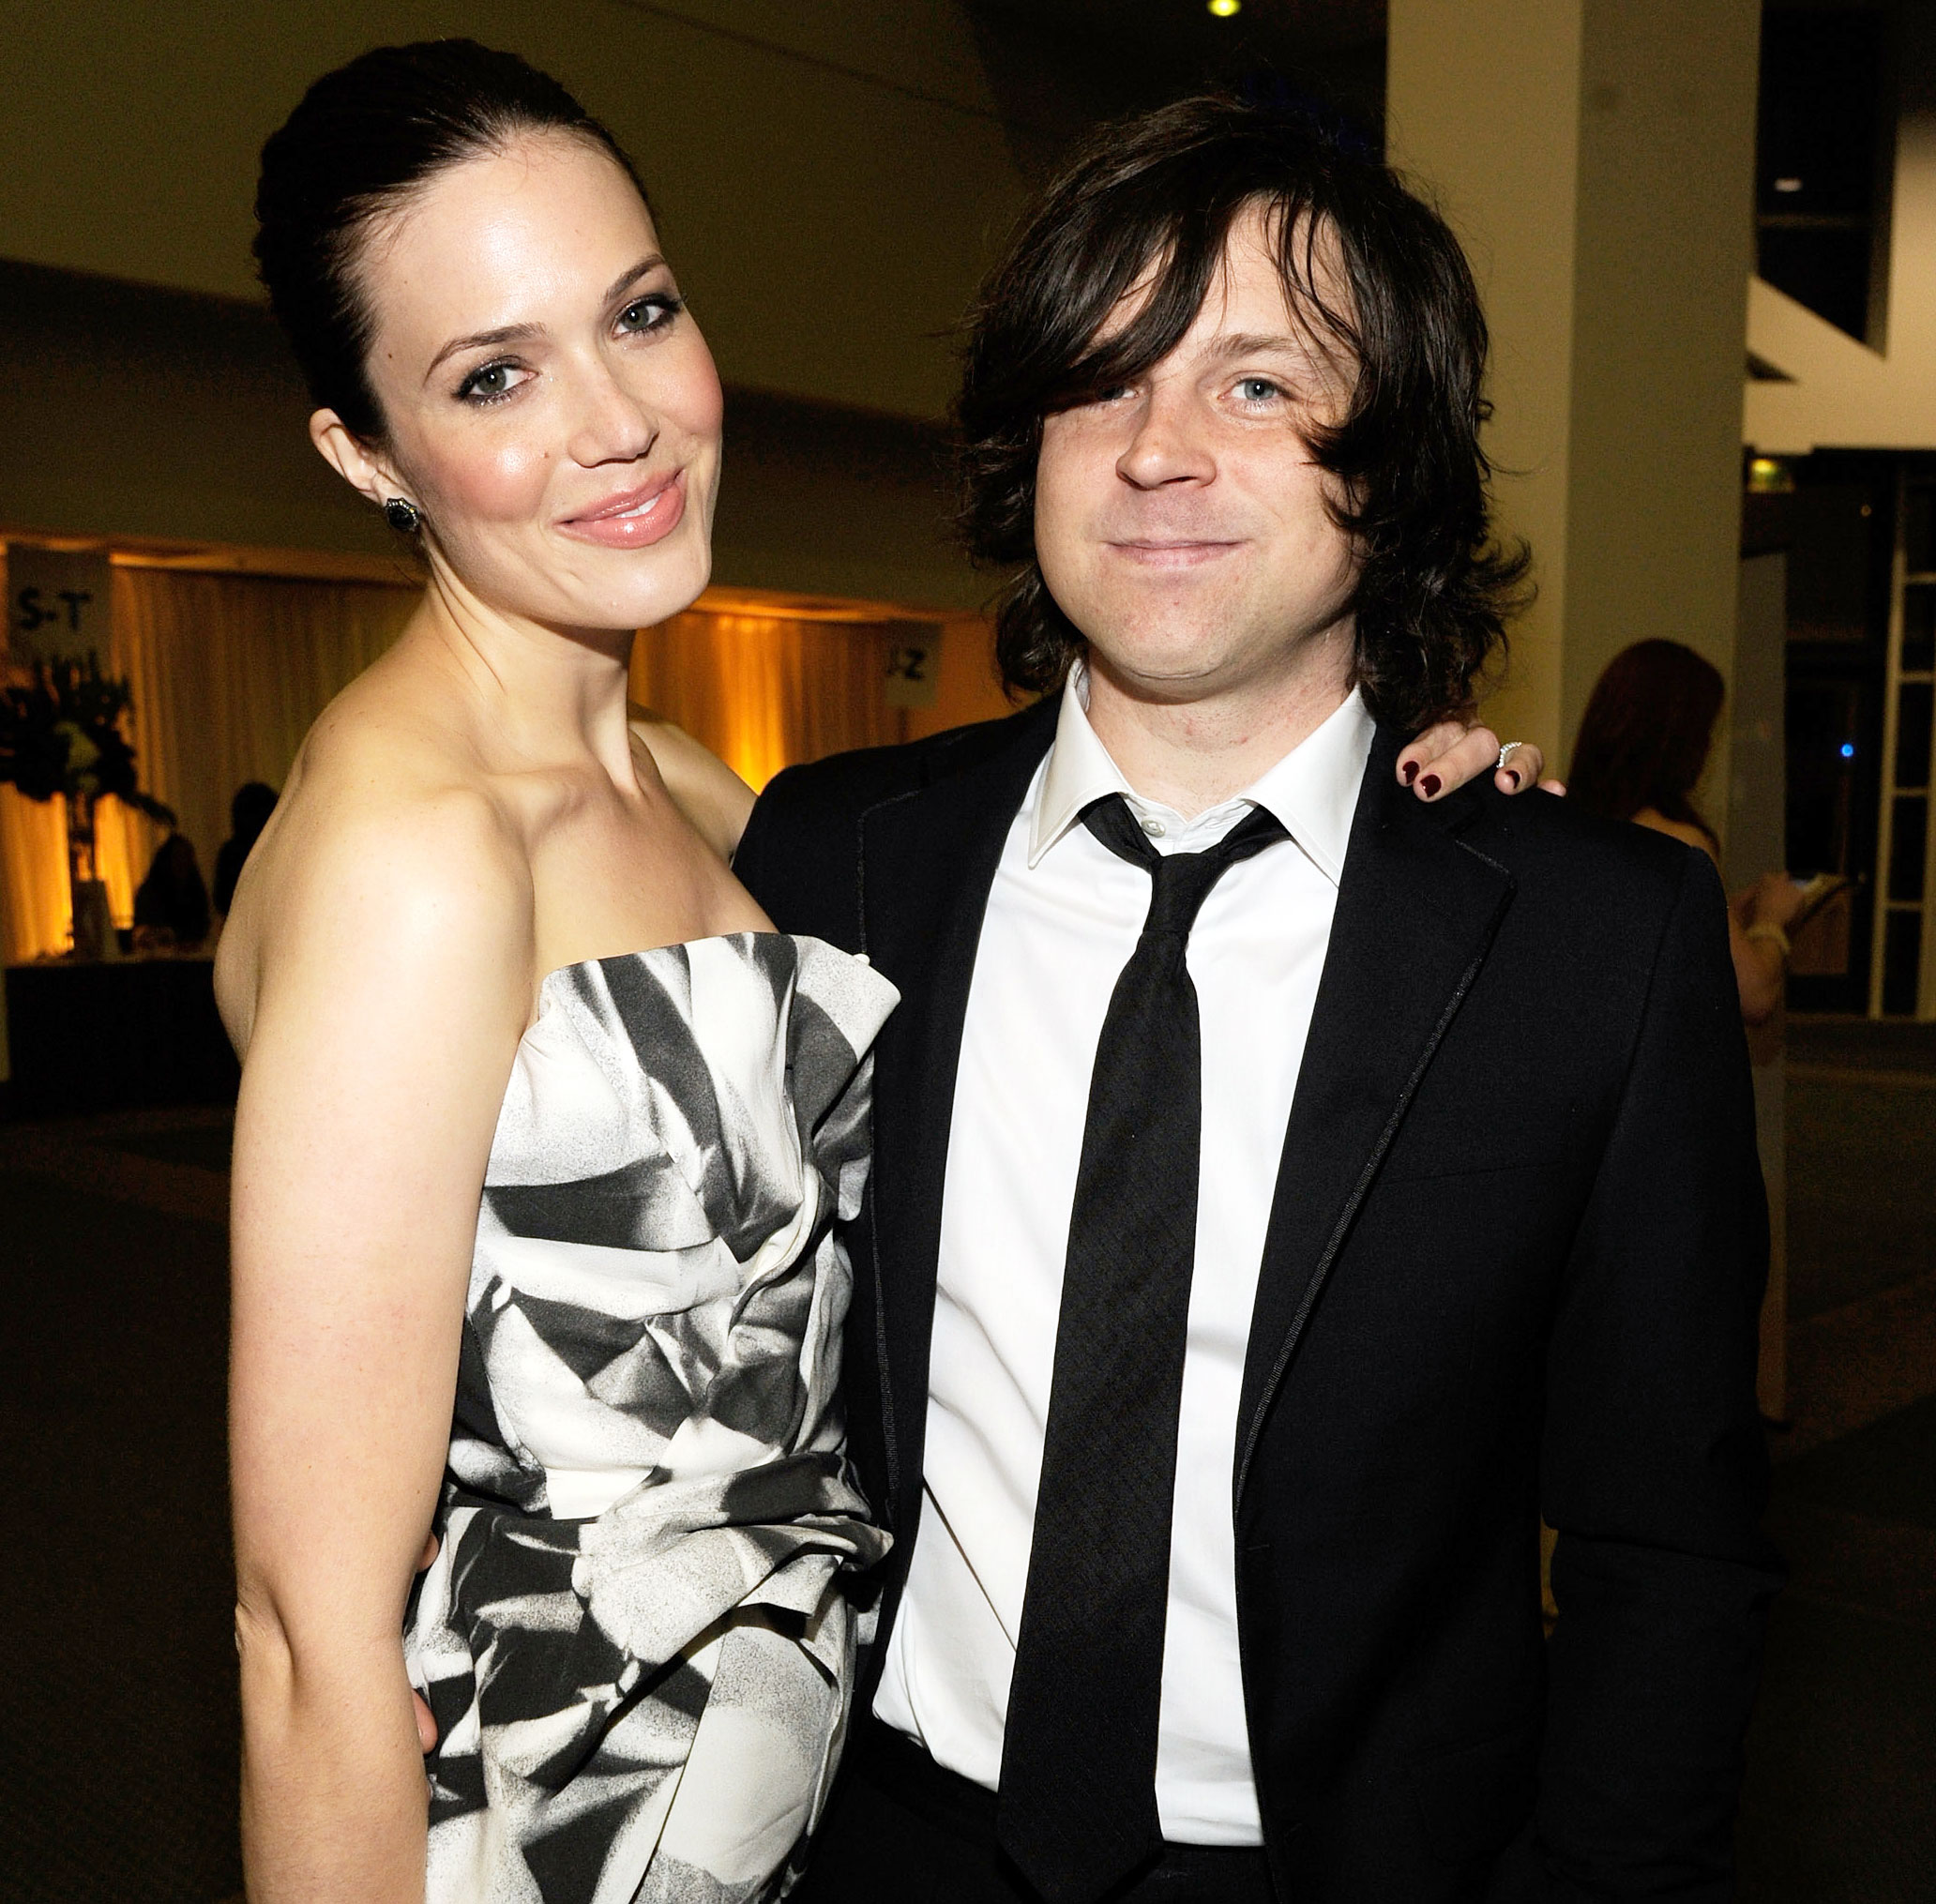 Mandy Moore Shares Taken Away Ryan Adams Psychological Abuse - Mandy Moore and Ryan Adams attend The MusiCares Person Of The Year Gala Honoring Paul McCartney at Los Angeles Convention Center on February 10, 2012.